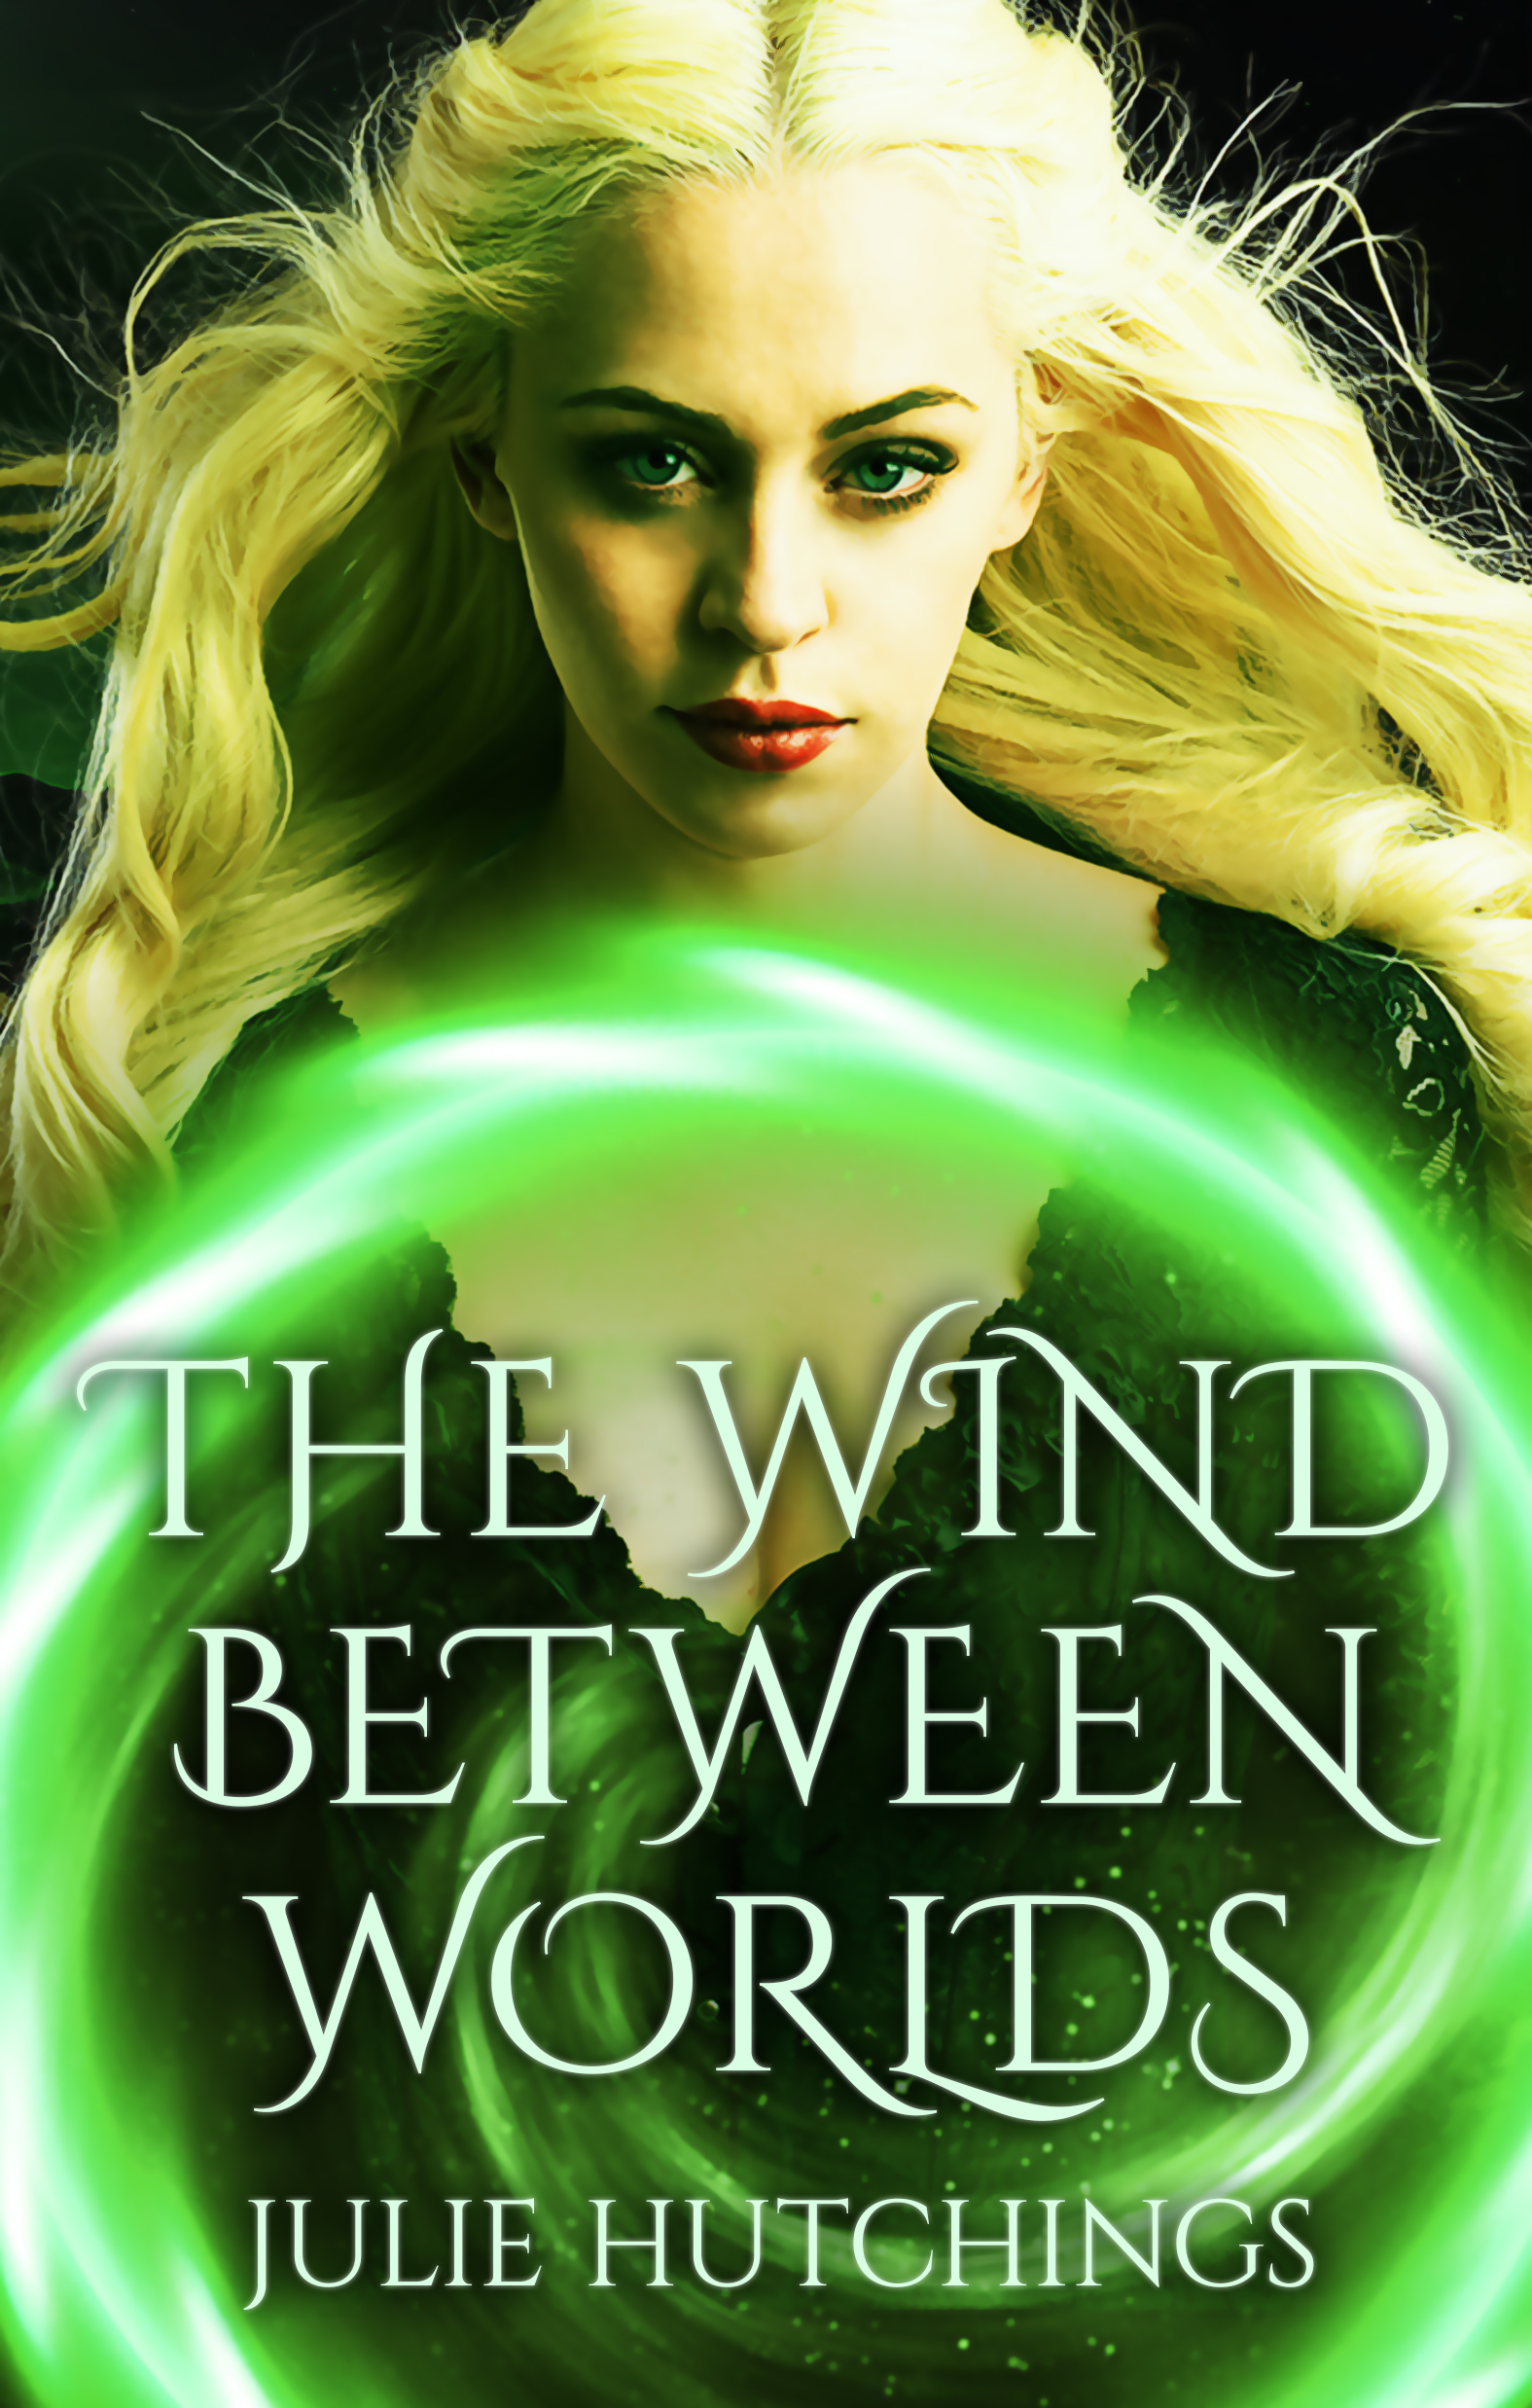 THE WIND BETWEEN WORLDS 2.jpg